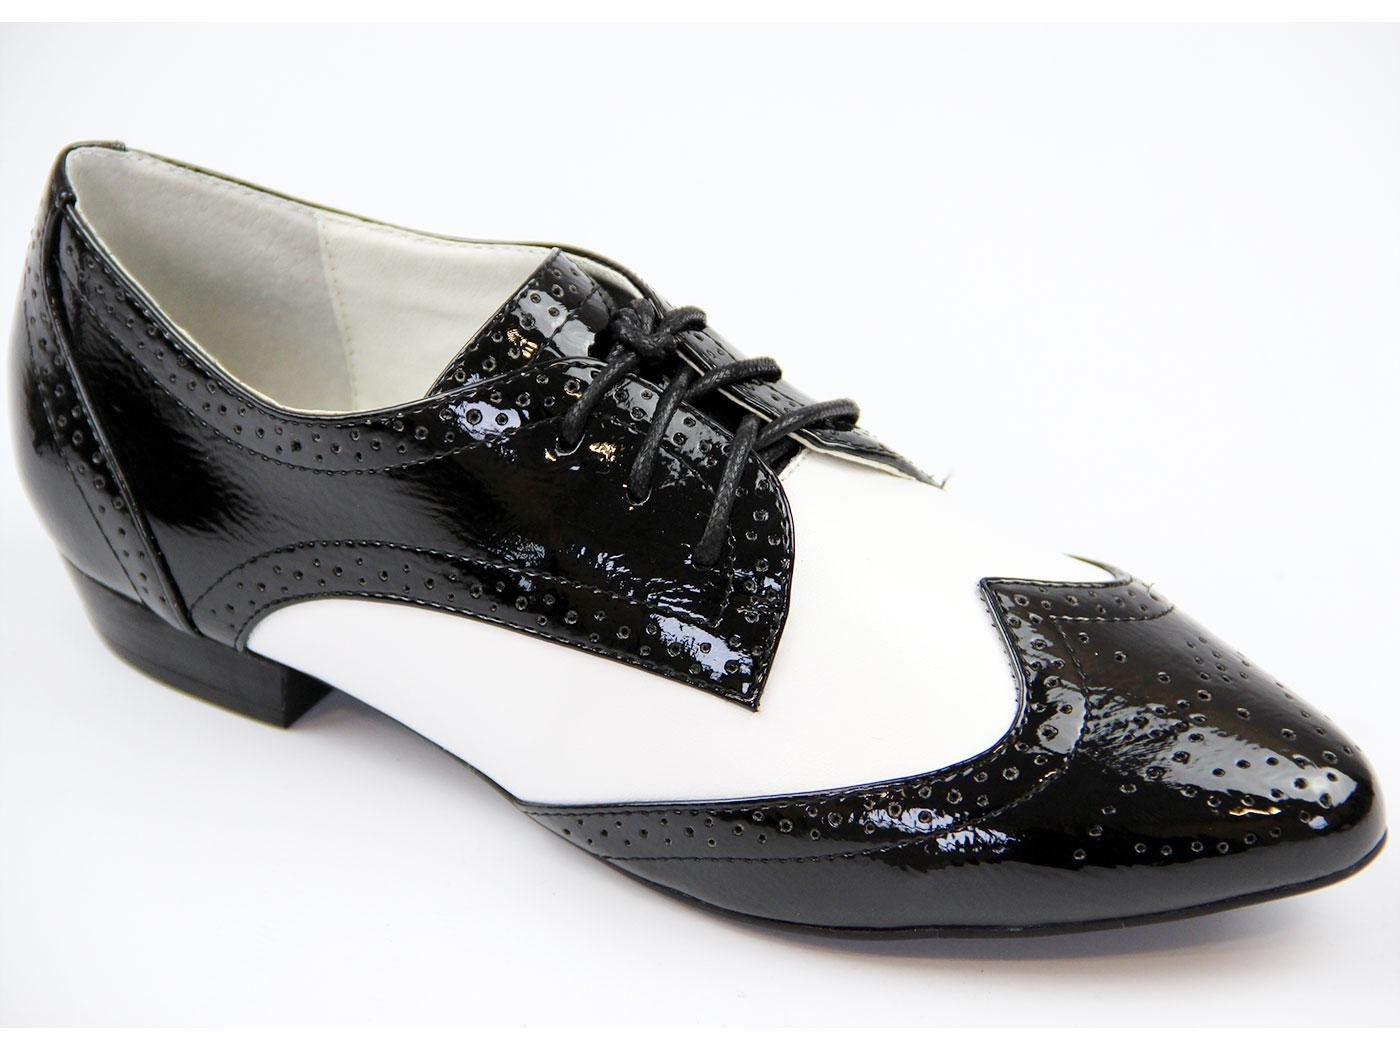 madcap womens retro 60s glenda brogue shoes in